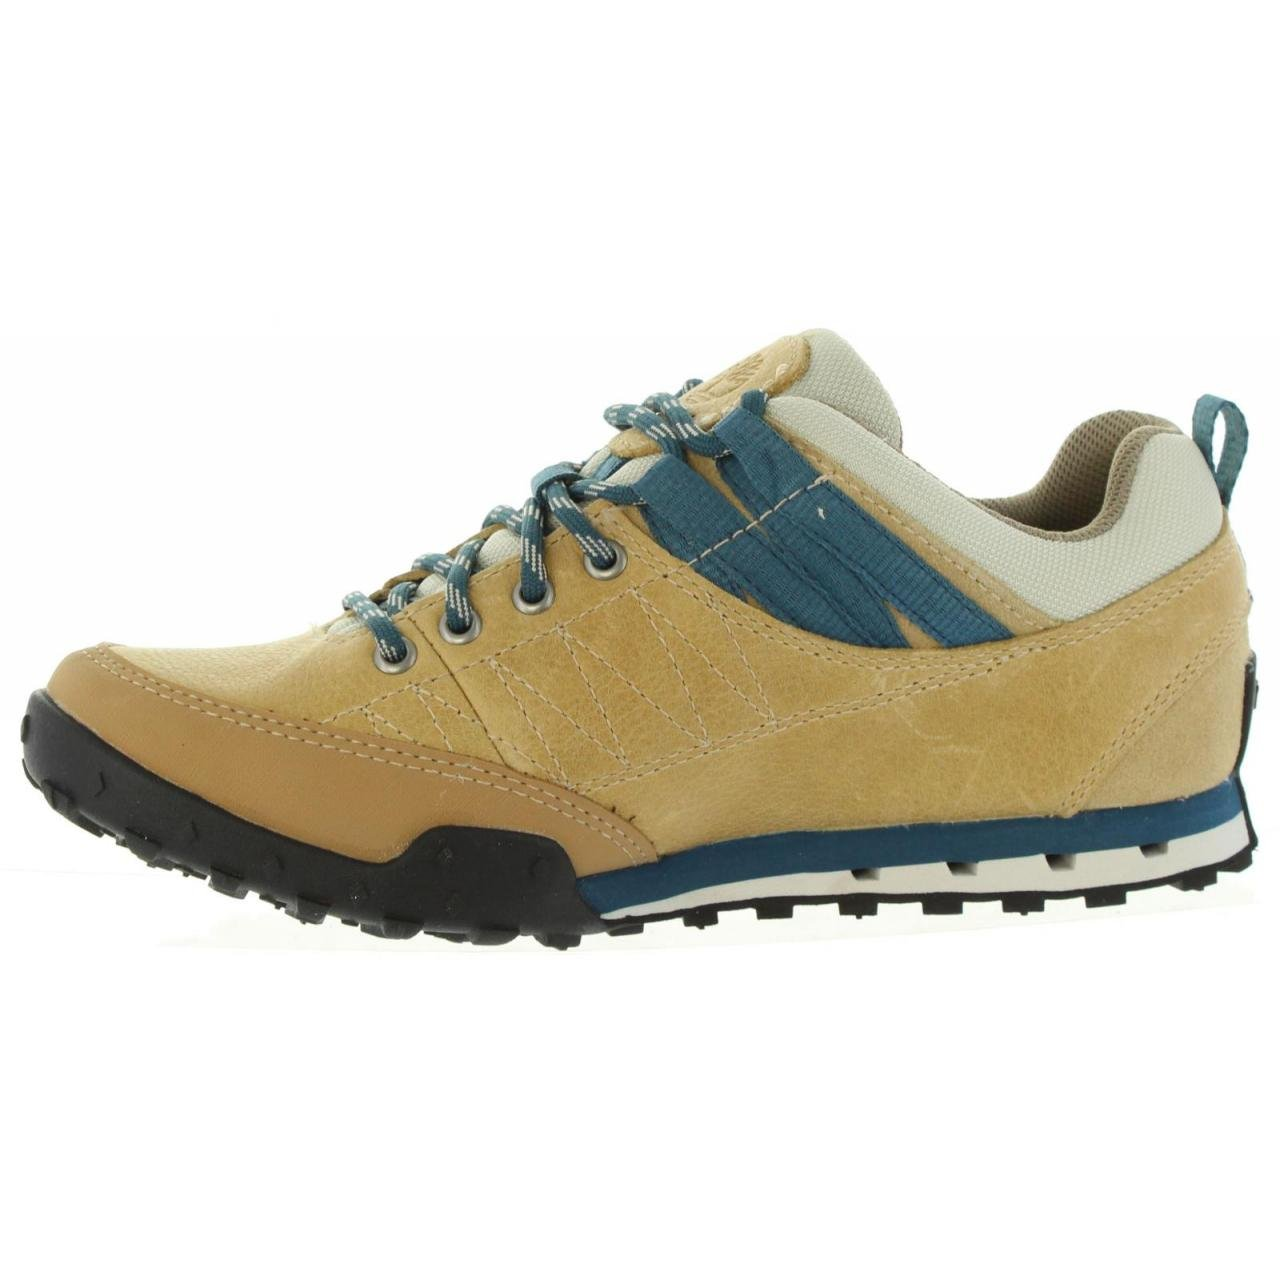 Homme Ca1fsh Taille Doe Timberland 41 Chaussures Pour 8wNnm0